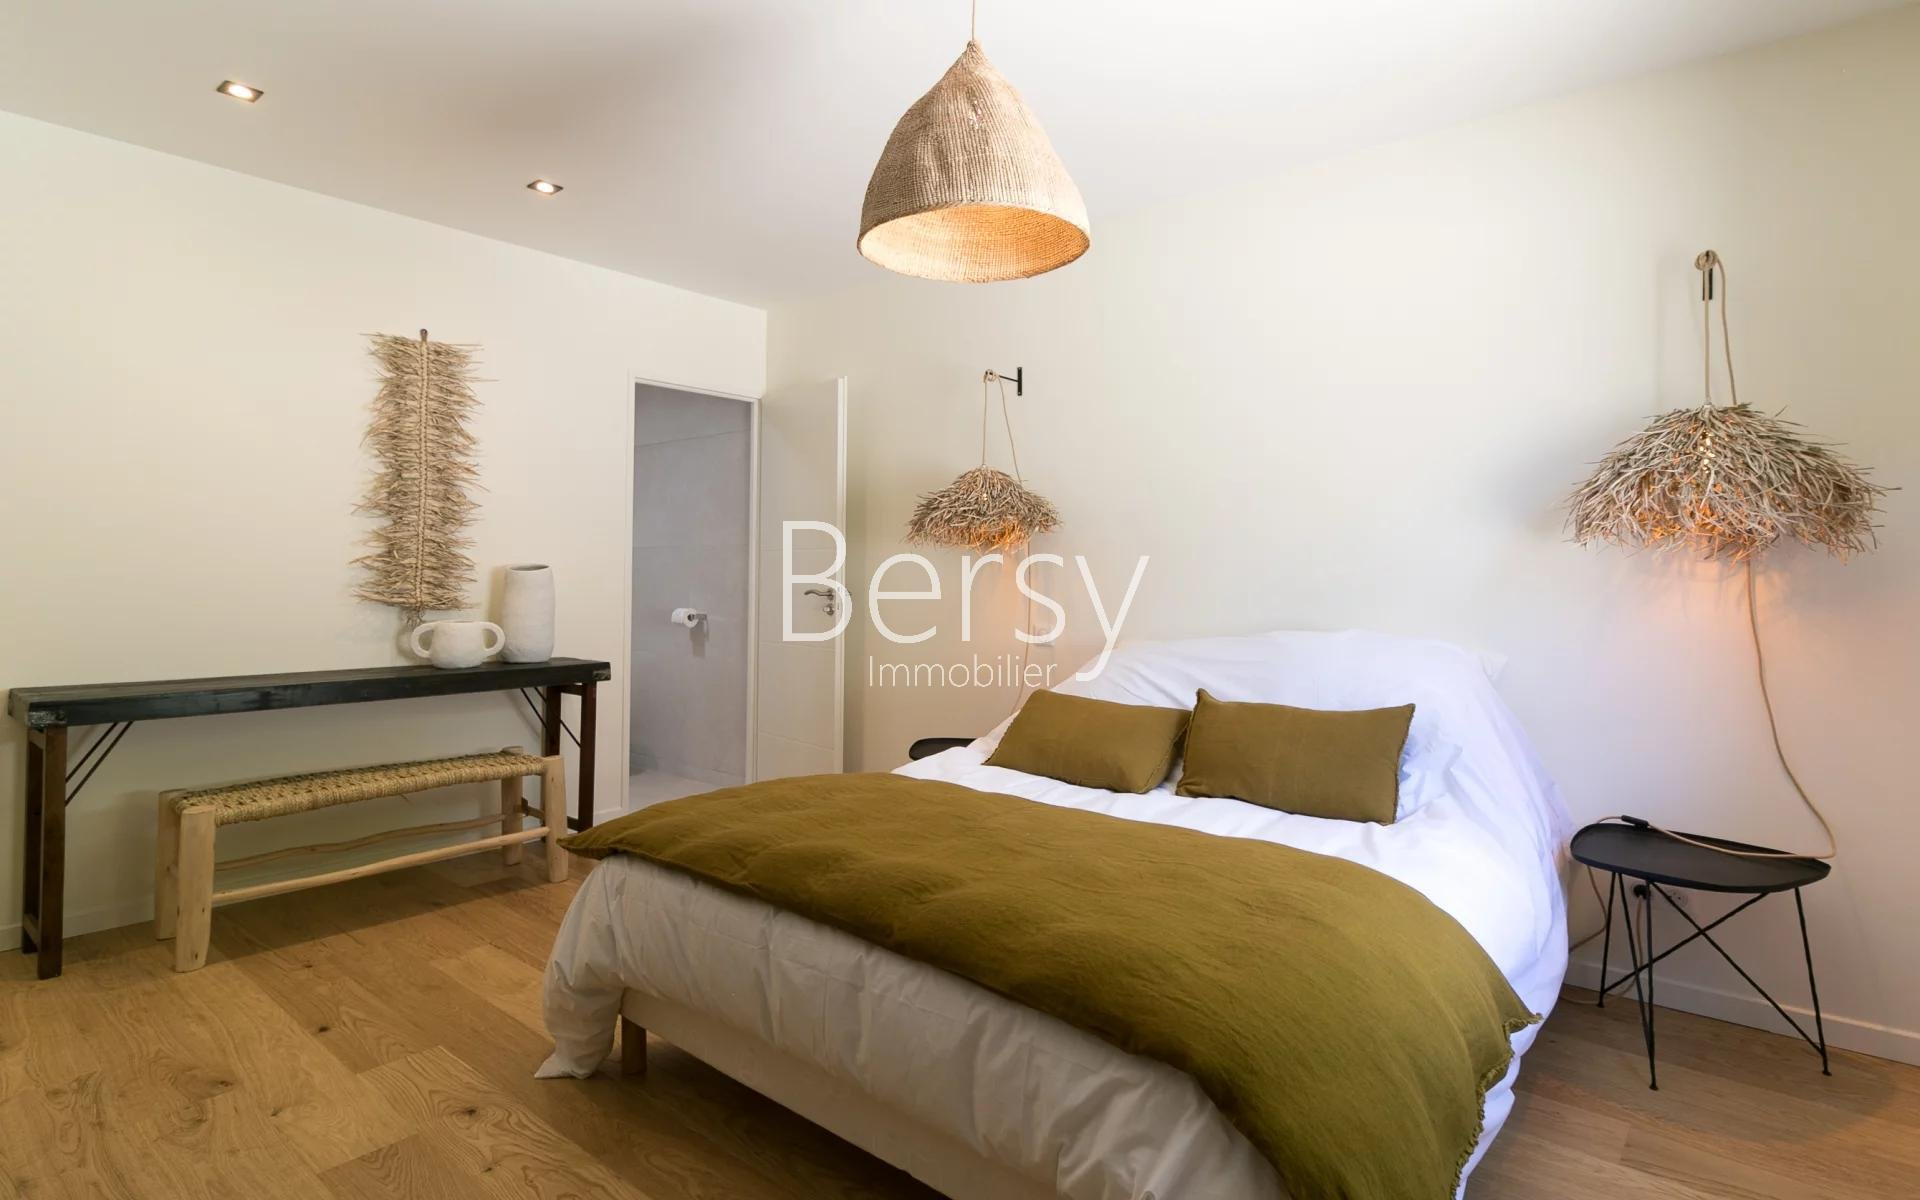 ★ CONTEMPORARY House with Pool ★ BERSY LUXURY PROPERTIES® ★ At the foot of MONT VENTOUX ★